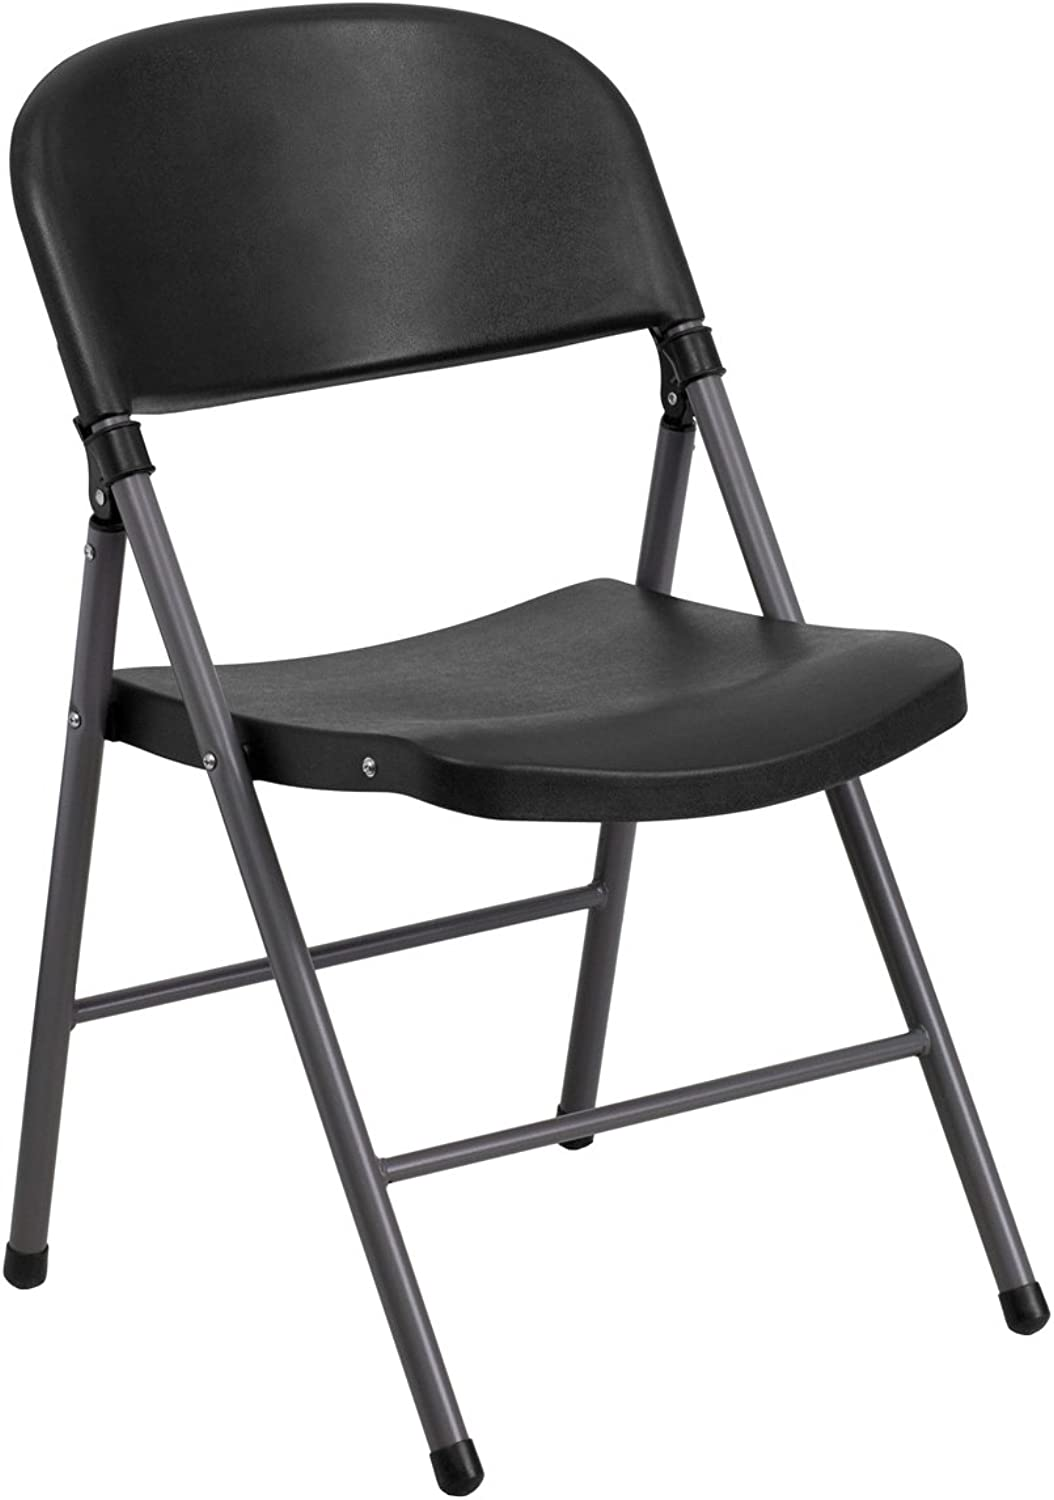 Offex OF-DAD-YCD-50-GG Hercules Series Black Plastic Folding Chair with Charcoal Frame, 330-Pound